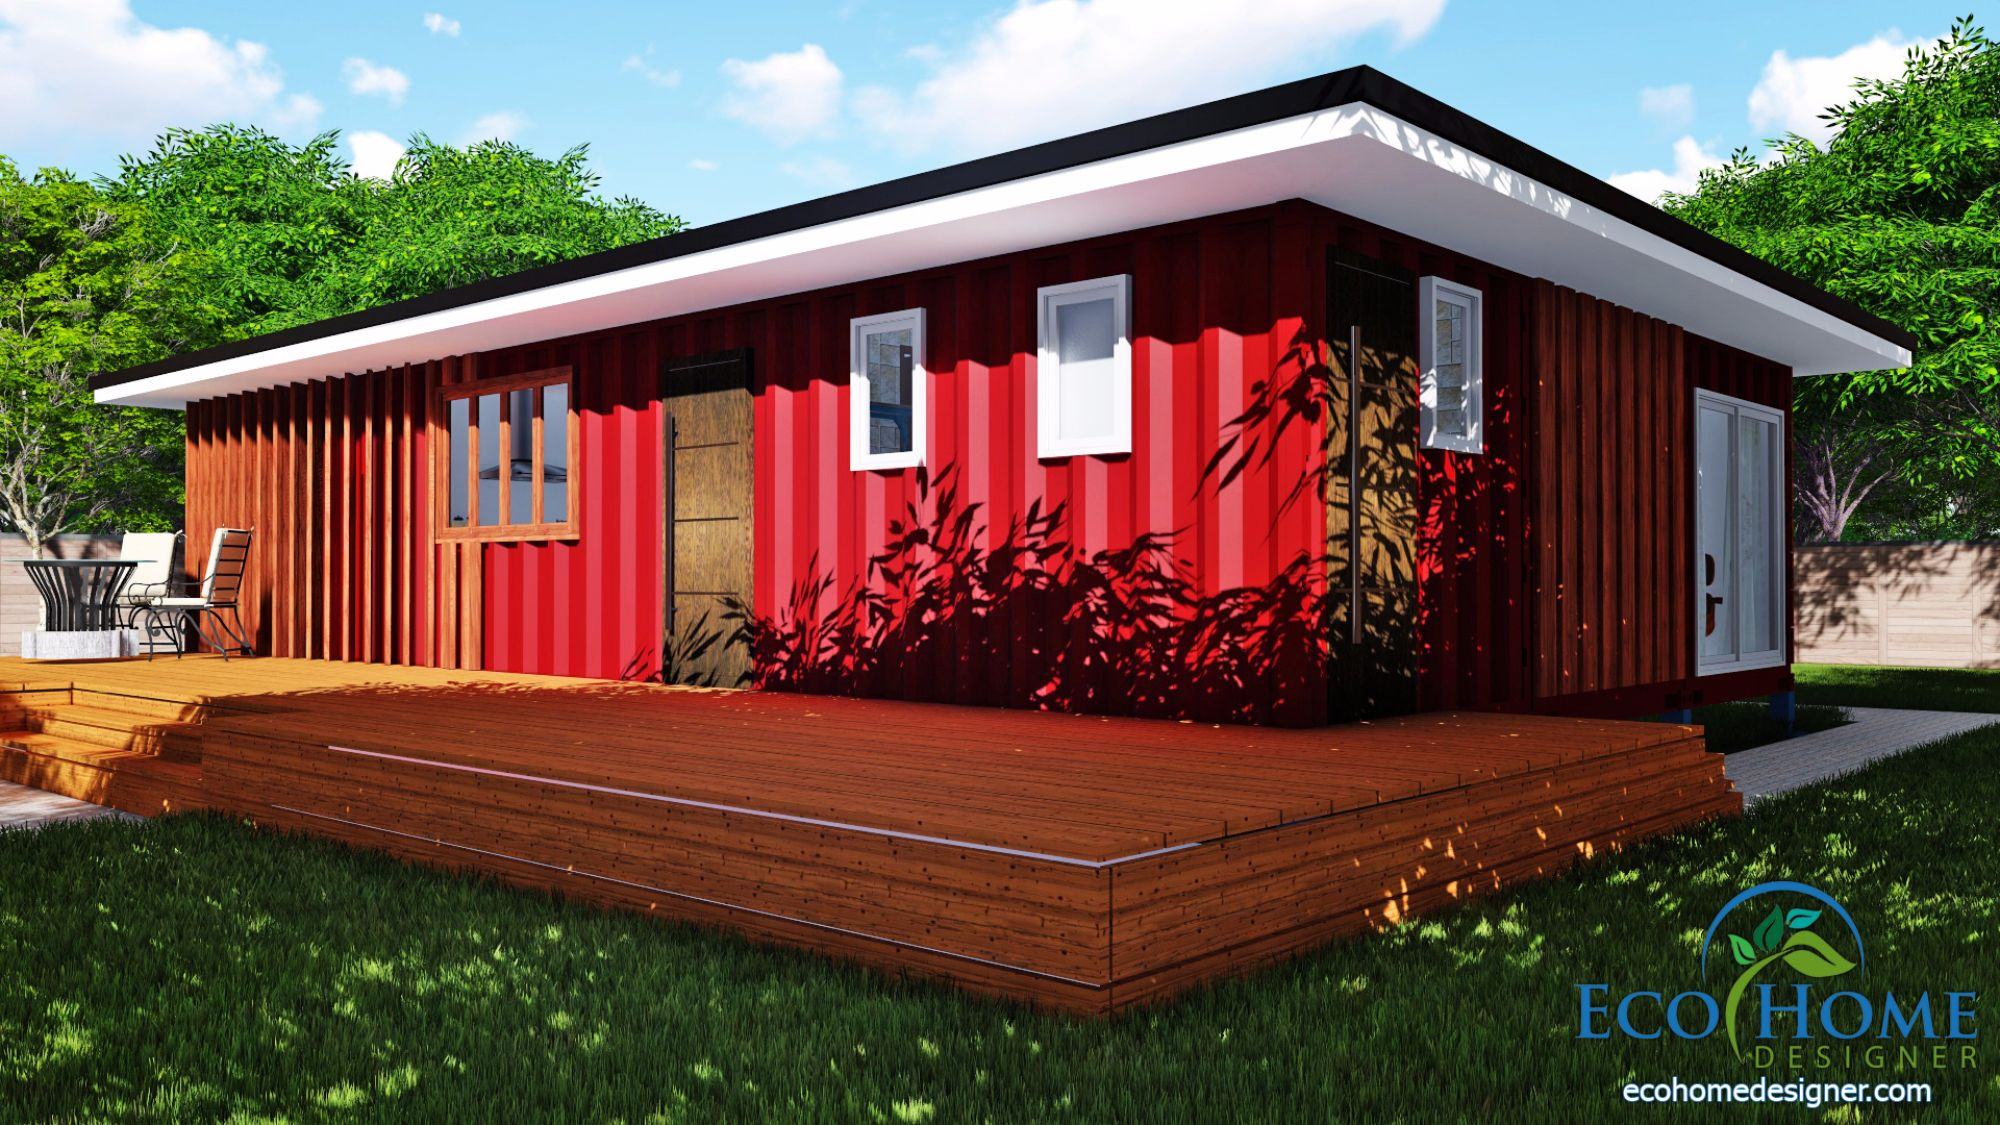 sch11 3 x 40ft 2 bedroom container home plans - Container Home Designer